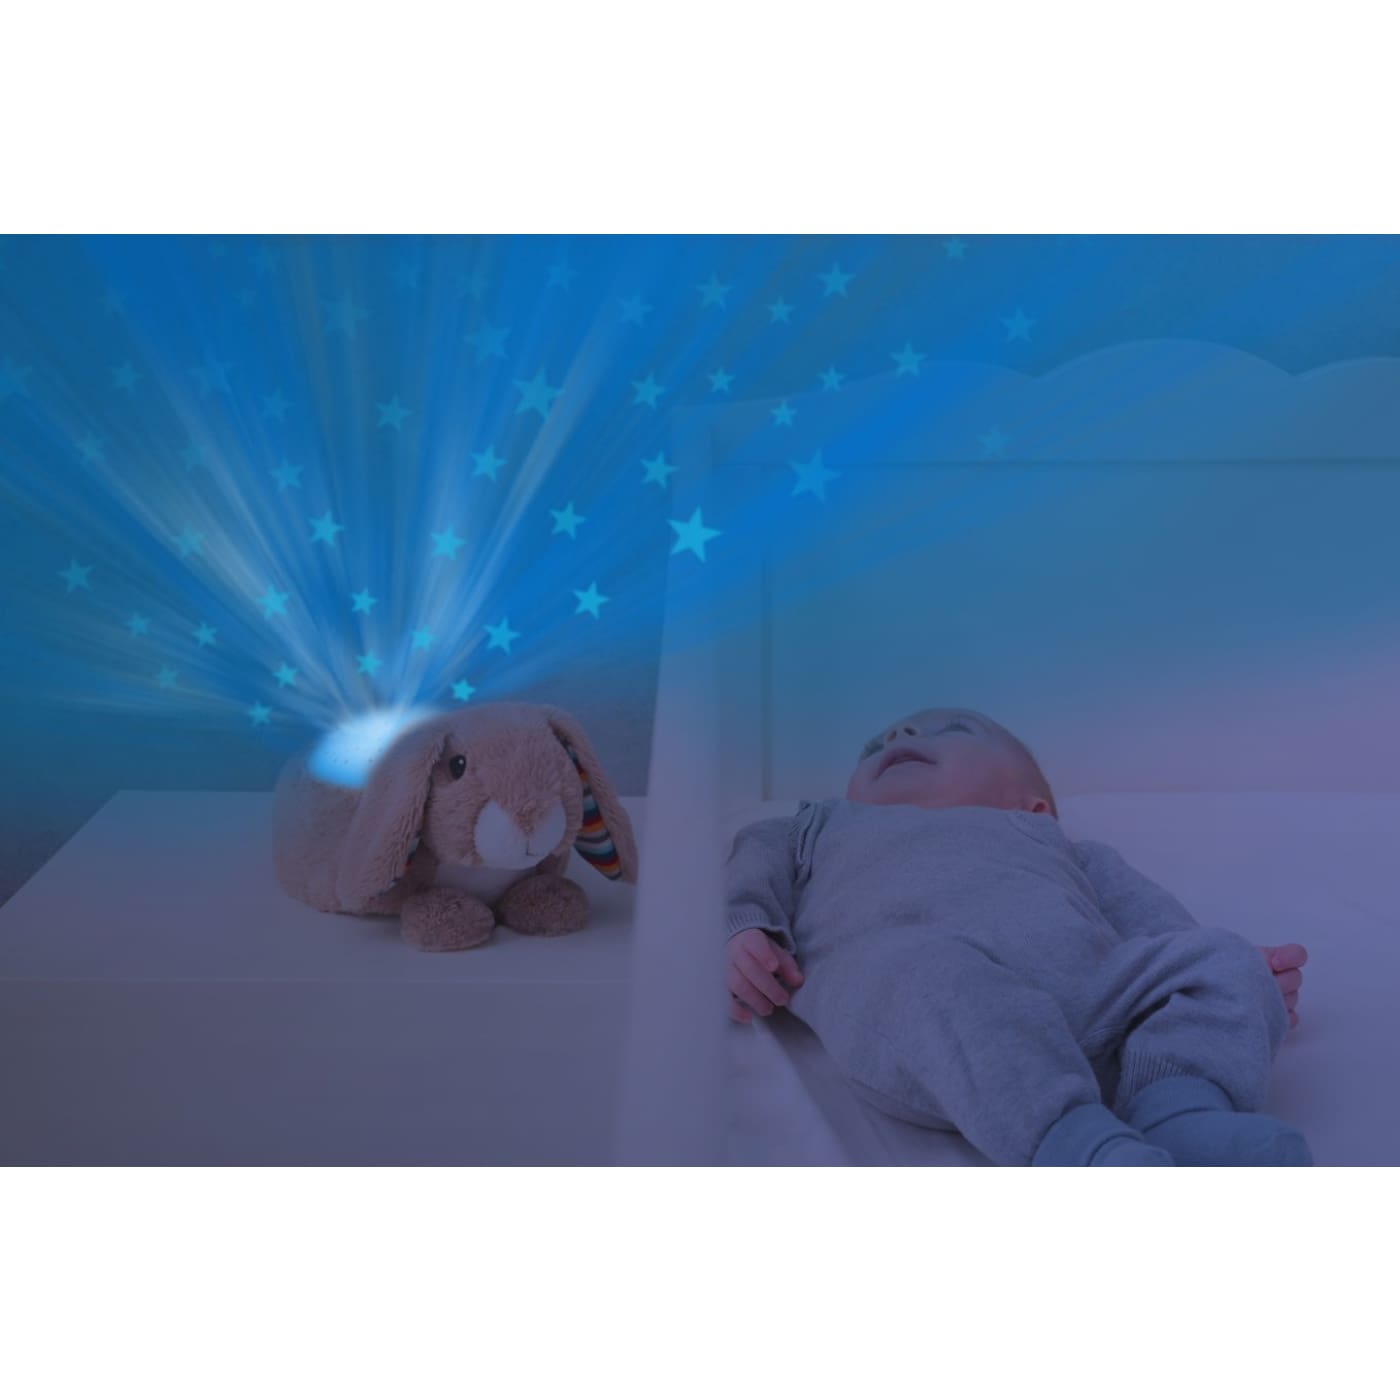 Zazu - Musical star projector RUBY - NURSERY & BEDTIME - SLEEP AIDS/NIGHT LIGHTS